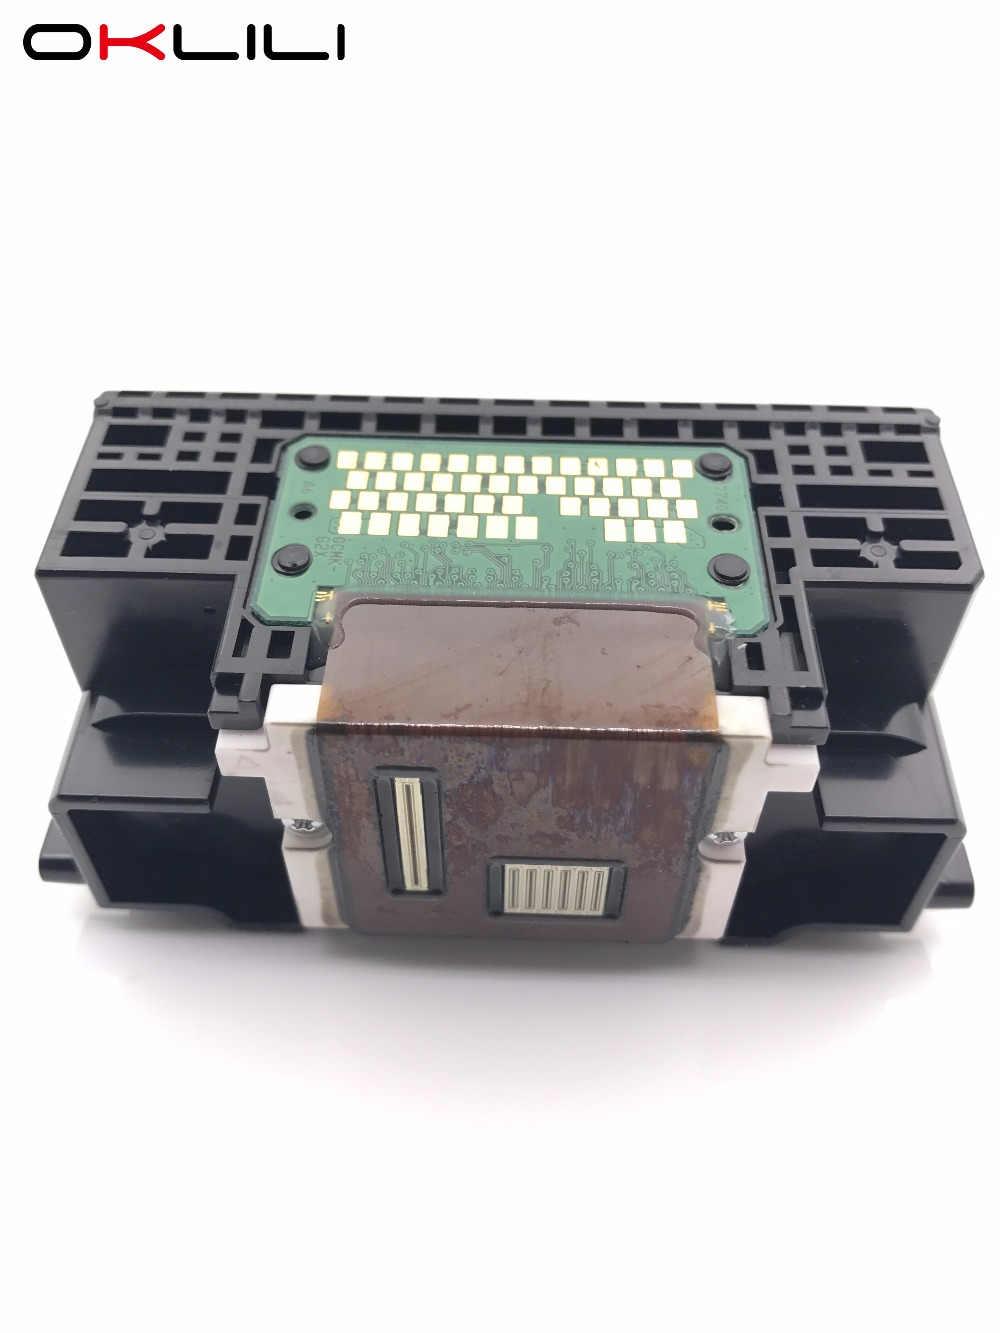 OKLILI QY6-0073 Printhead Print Head for Canon iP3600 iP3680 MP540 MP560 MP568 MP620 MX860 MX868 MX870 MX878 MG5140 MG5180